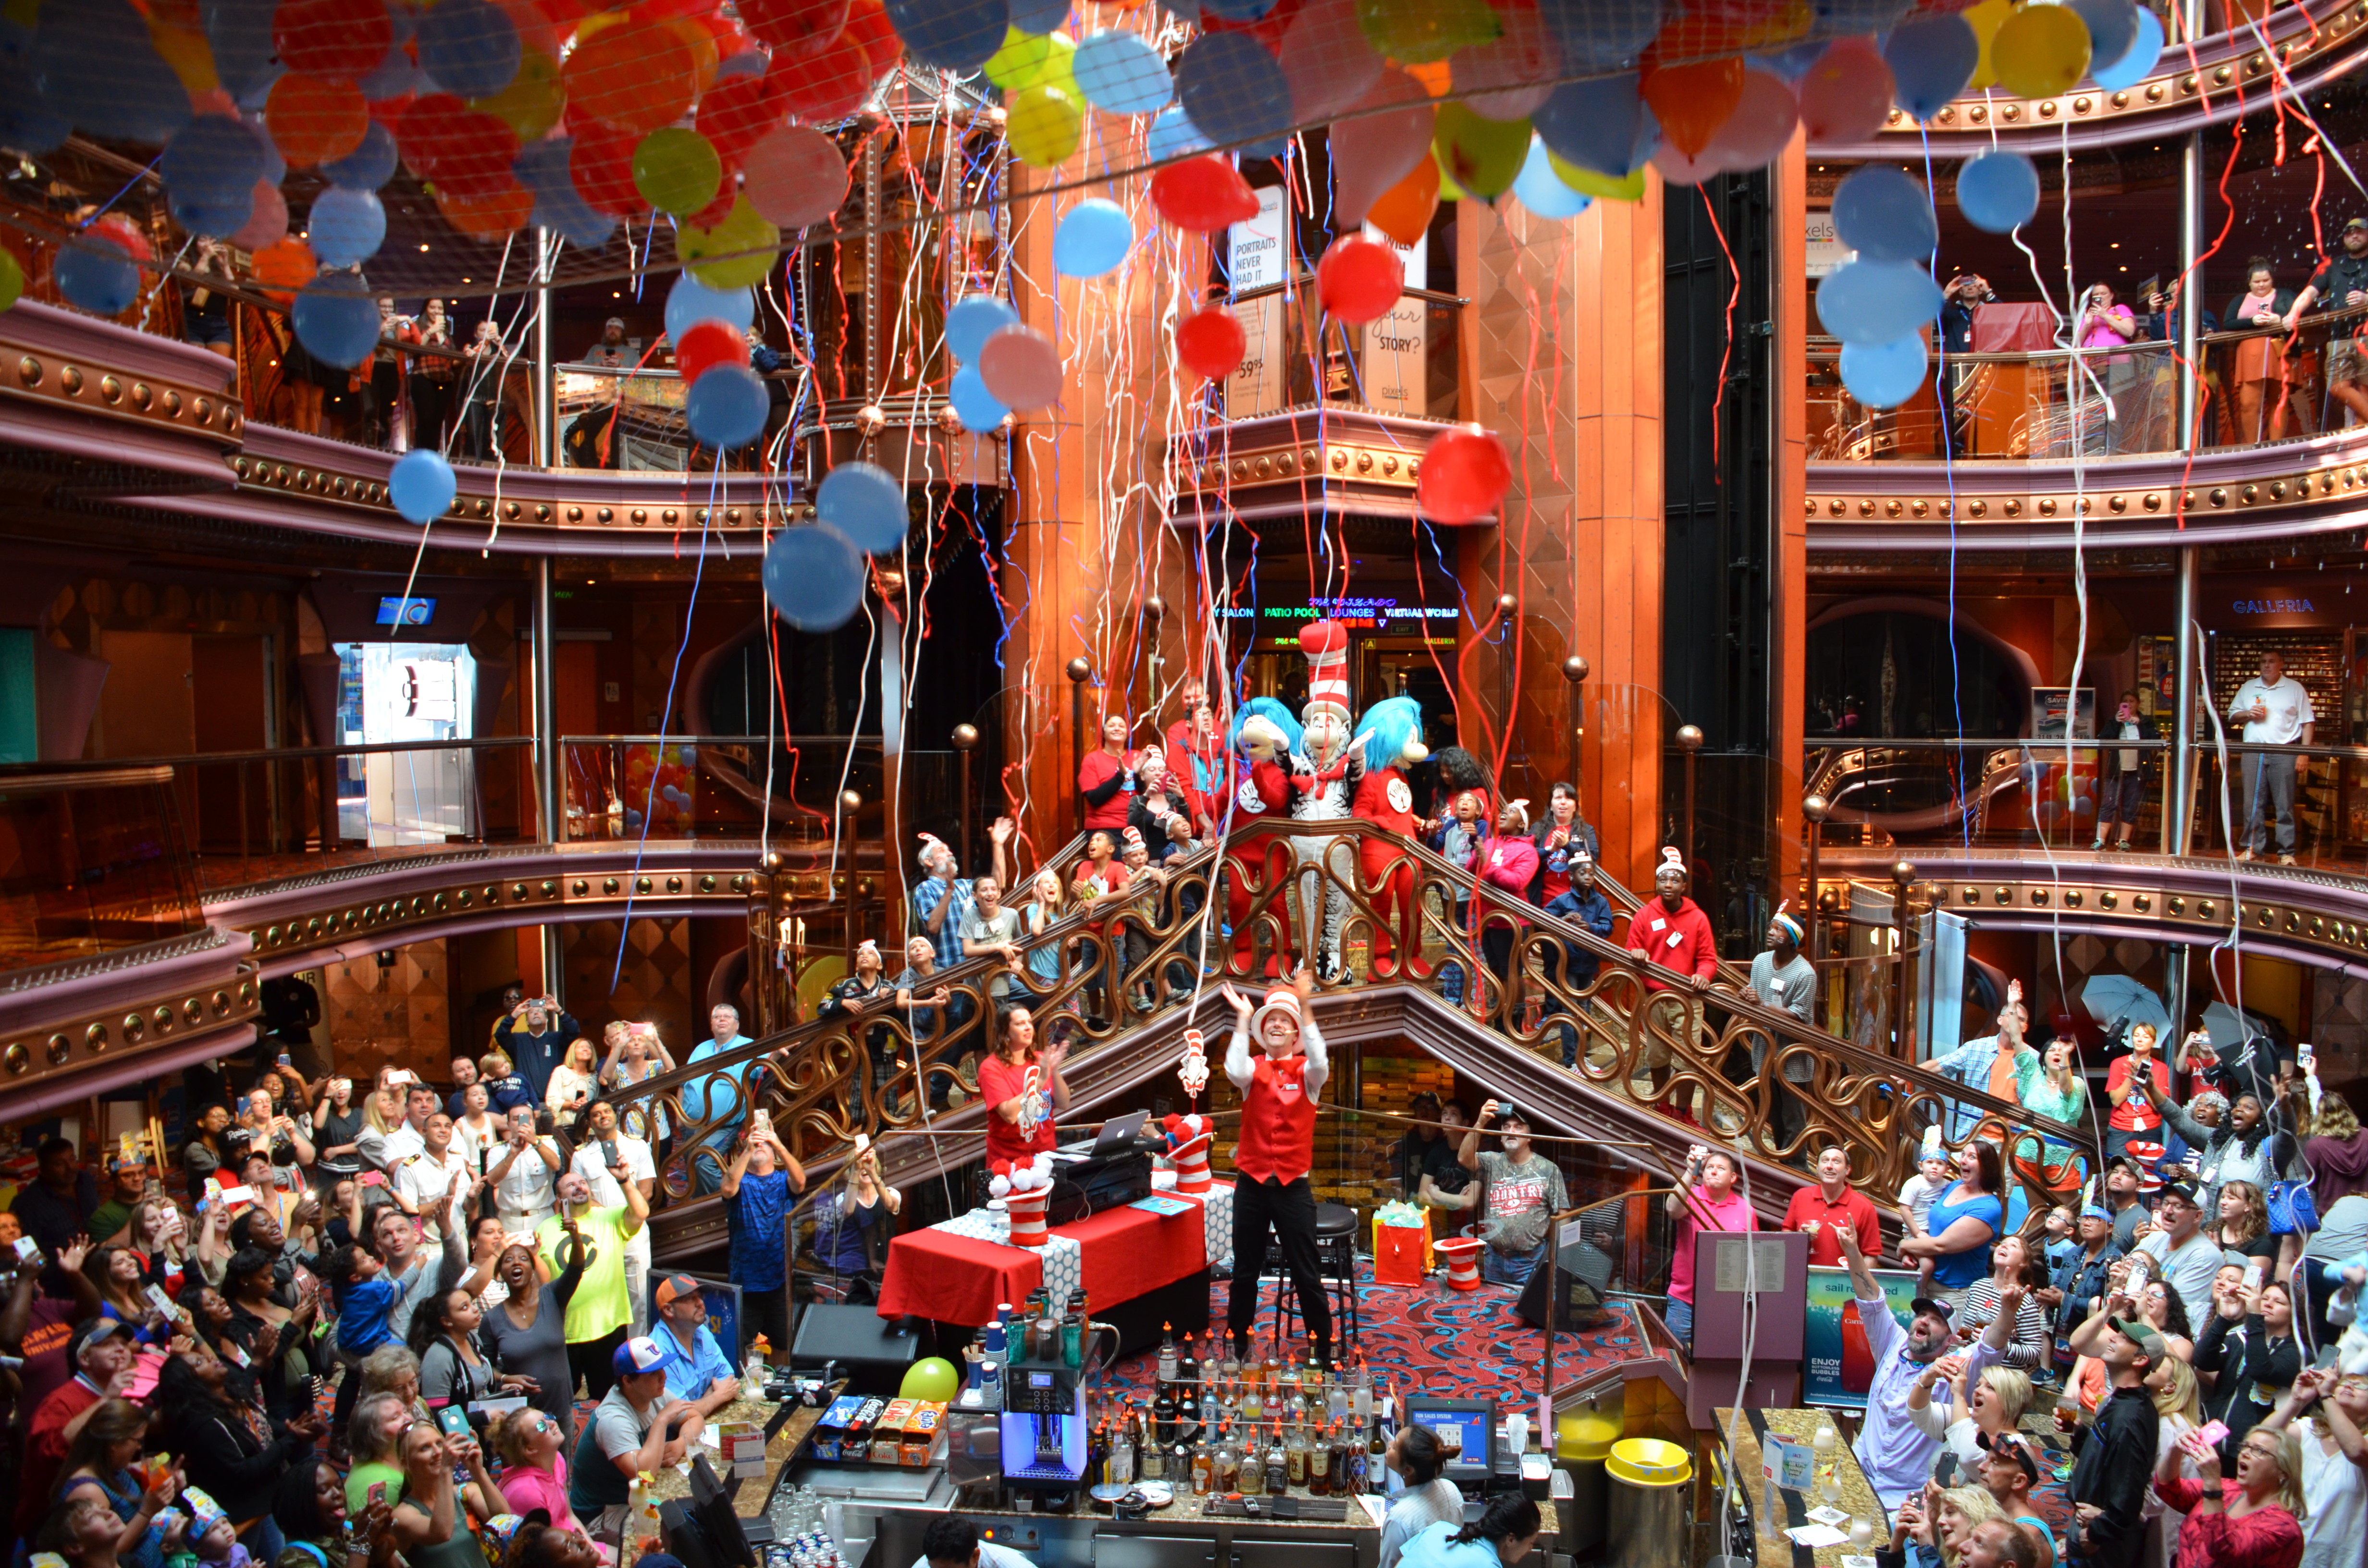 Dr. Seuss' Birthday Celebrated with Fun Family-Friendly Event Aboard Carnival Elation in Jacksonville